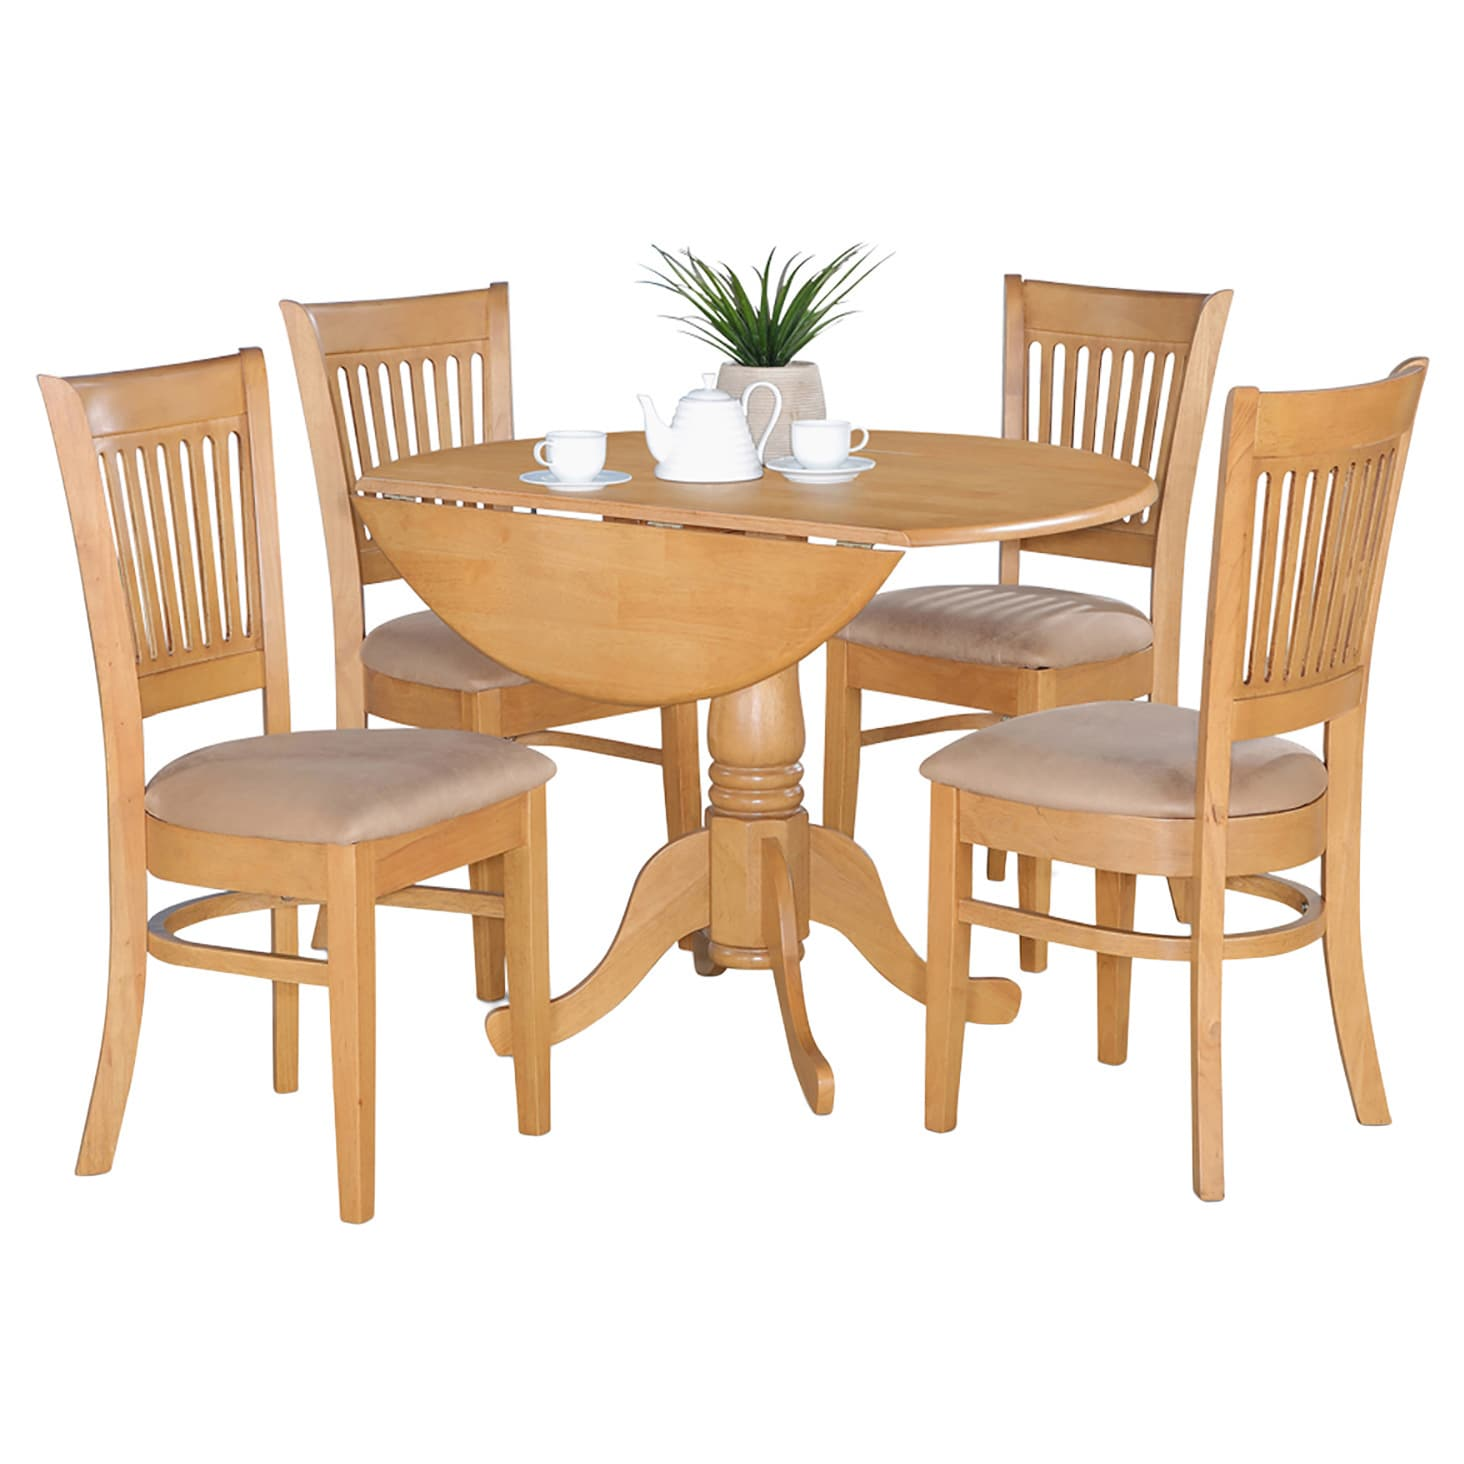 Oak Drop Leaf Table and 4 Dinette Chairs 5-piece Dining S...